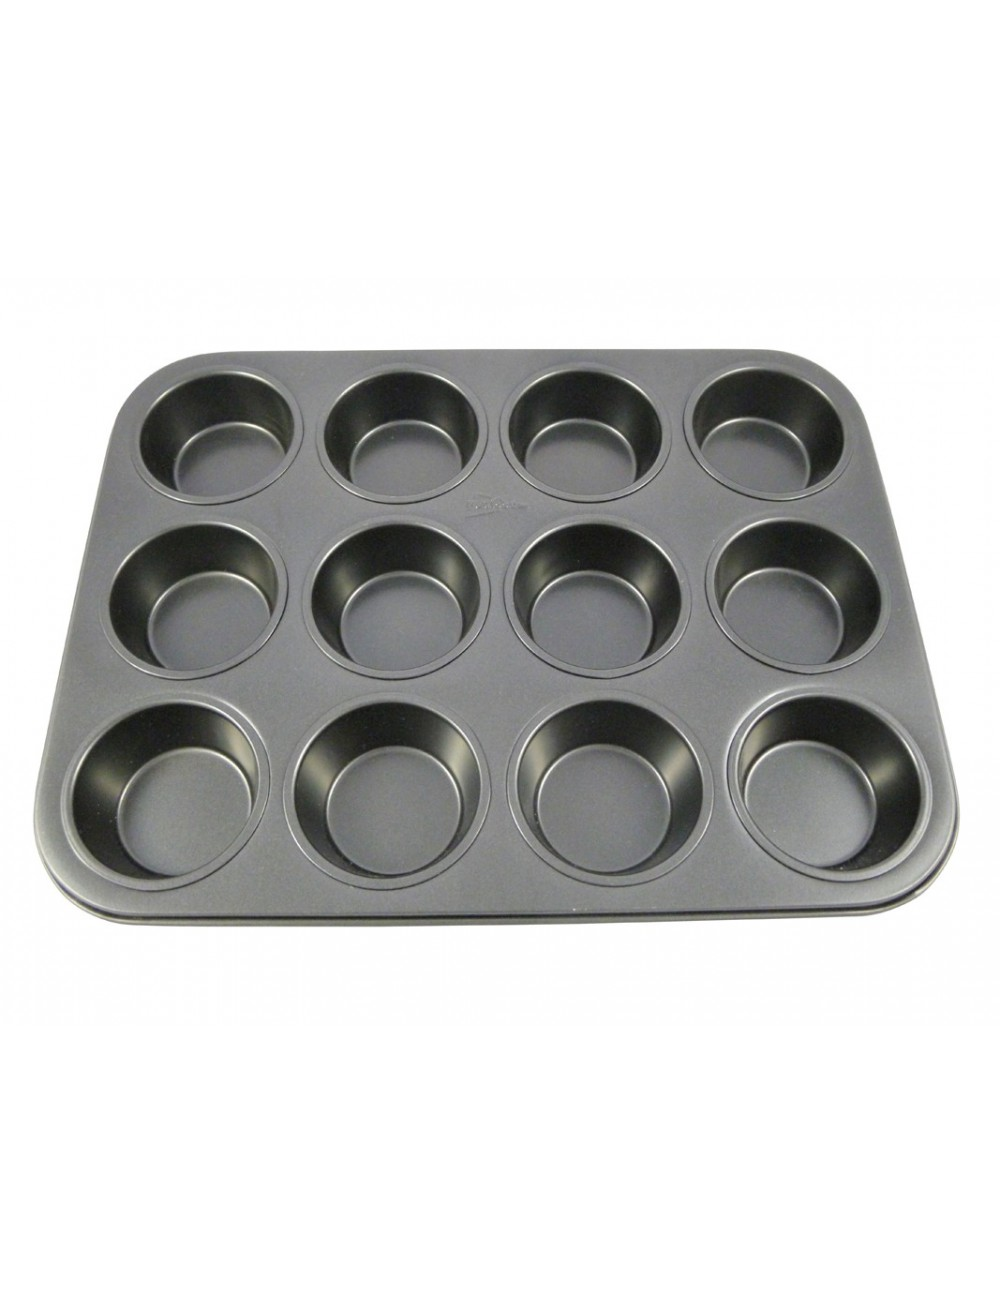 12 MUFFIN TIN - NON-STICK